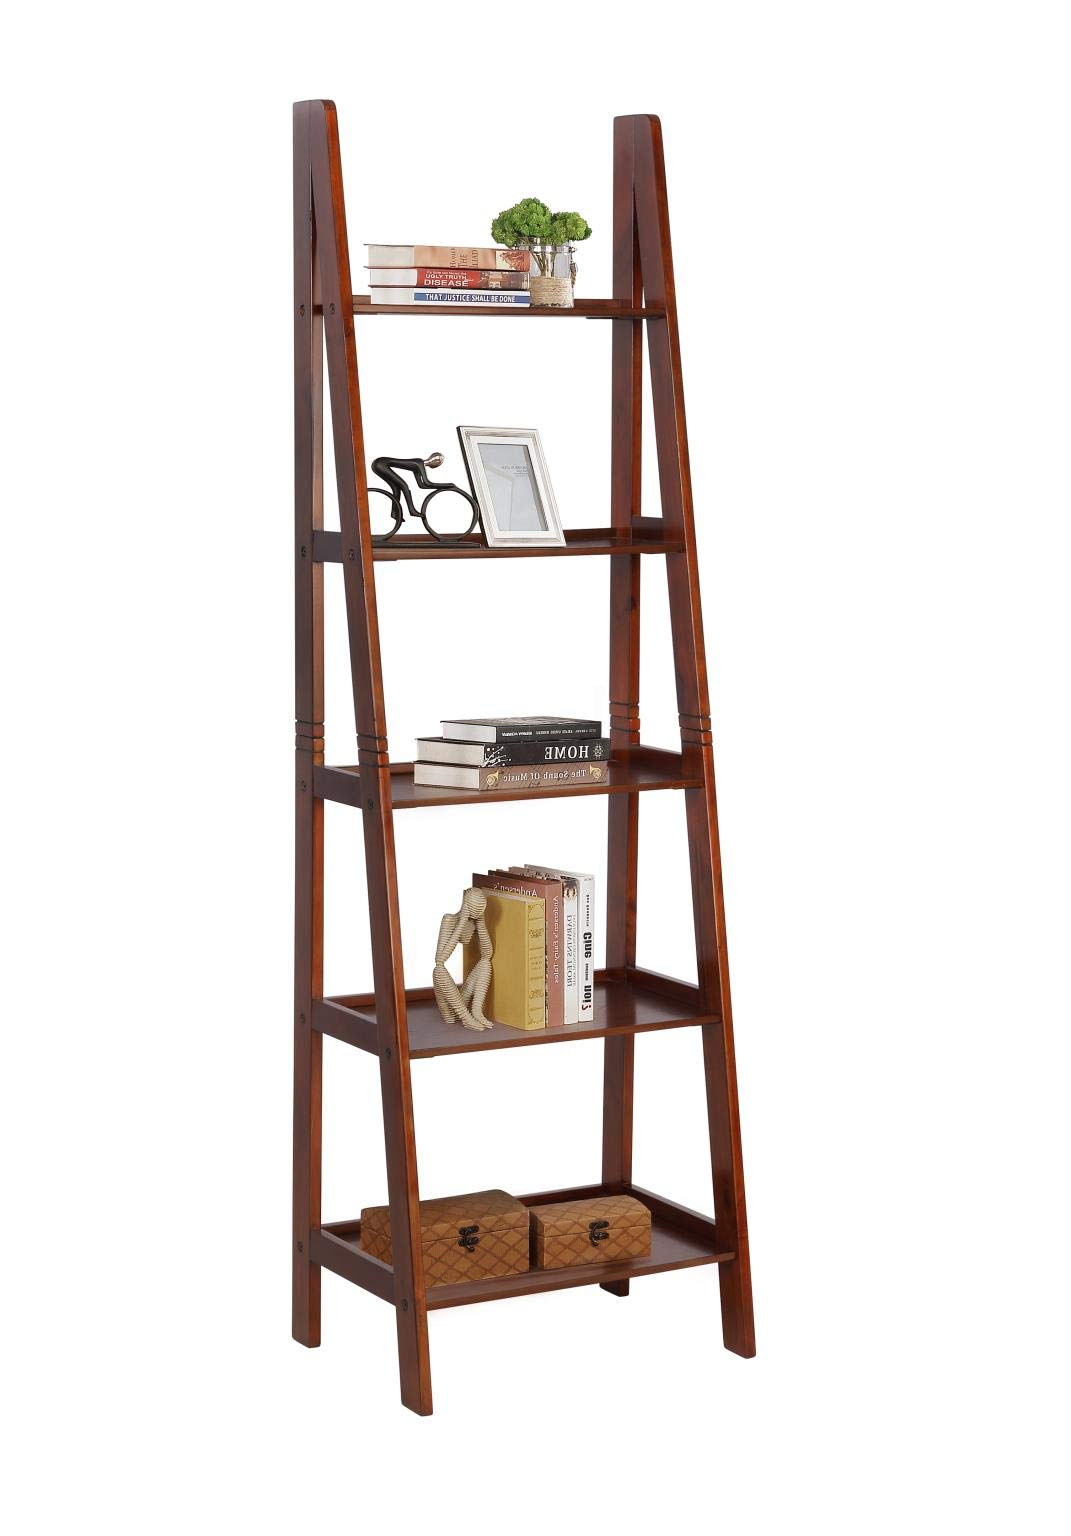 GTU Furniture 5 Wall Shelf Ladder Dark Cherry Wood Bookcase Bookshelf Plant Stand Storage Display